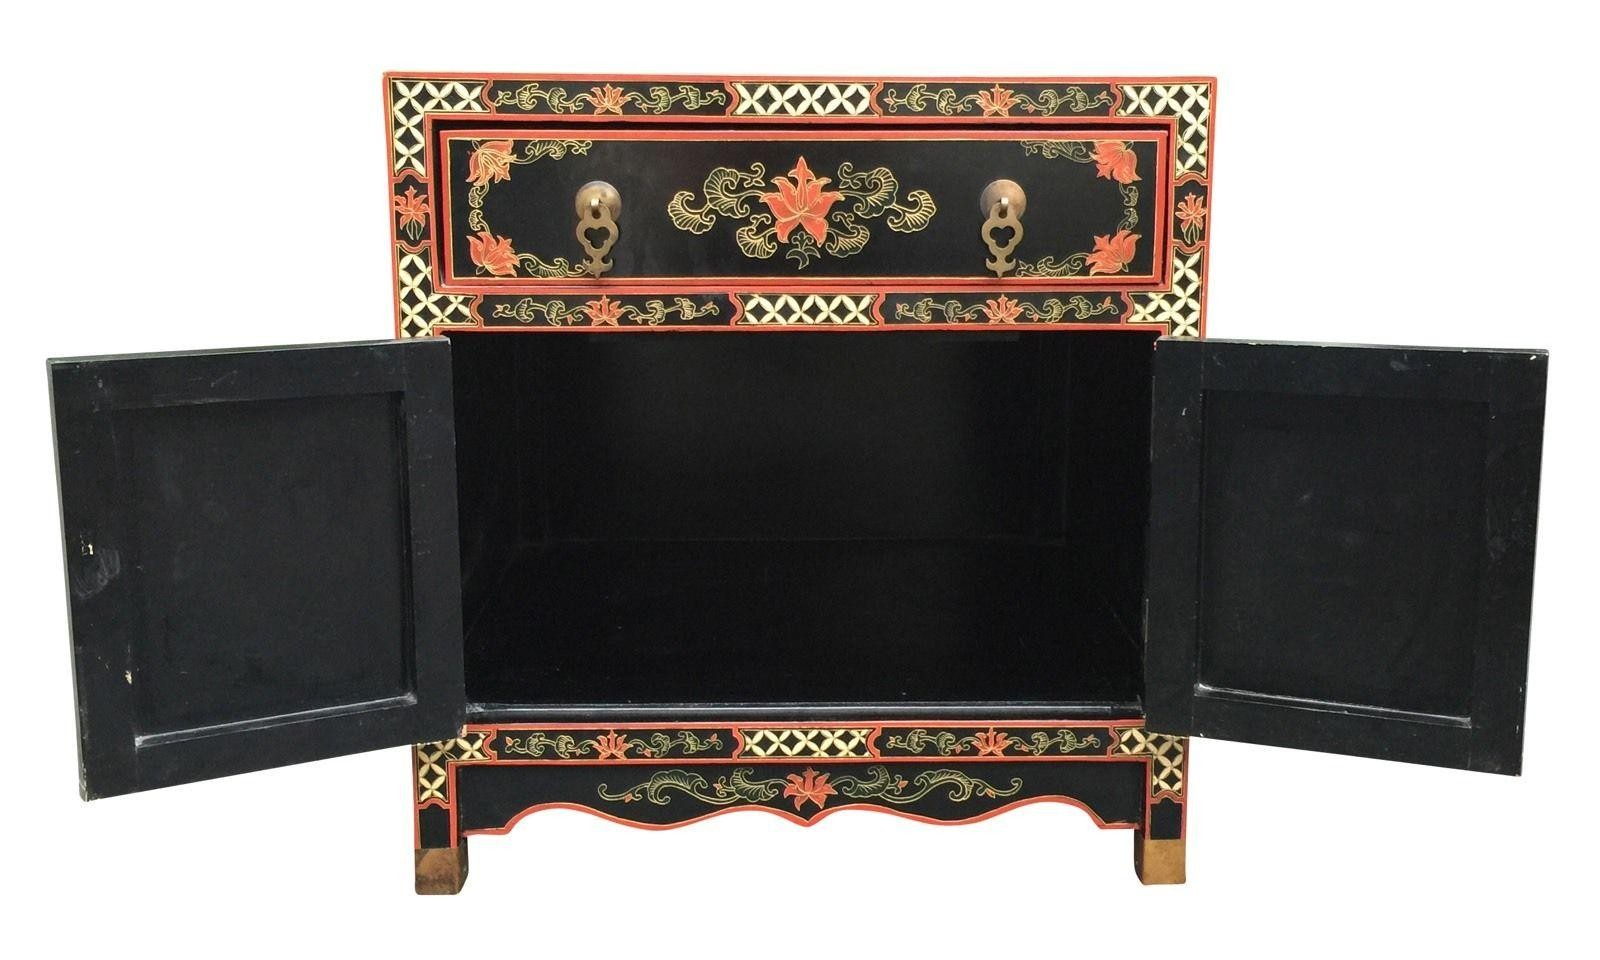 beautiful chinese chest accent table nightstand hand painted tables chests next distressed white coffee pier sofa lamp base modern with storage wood living room furniture dining